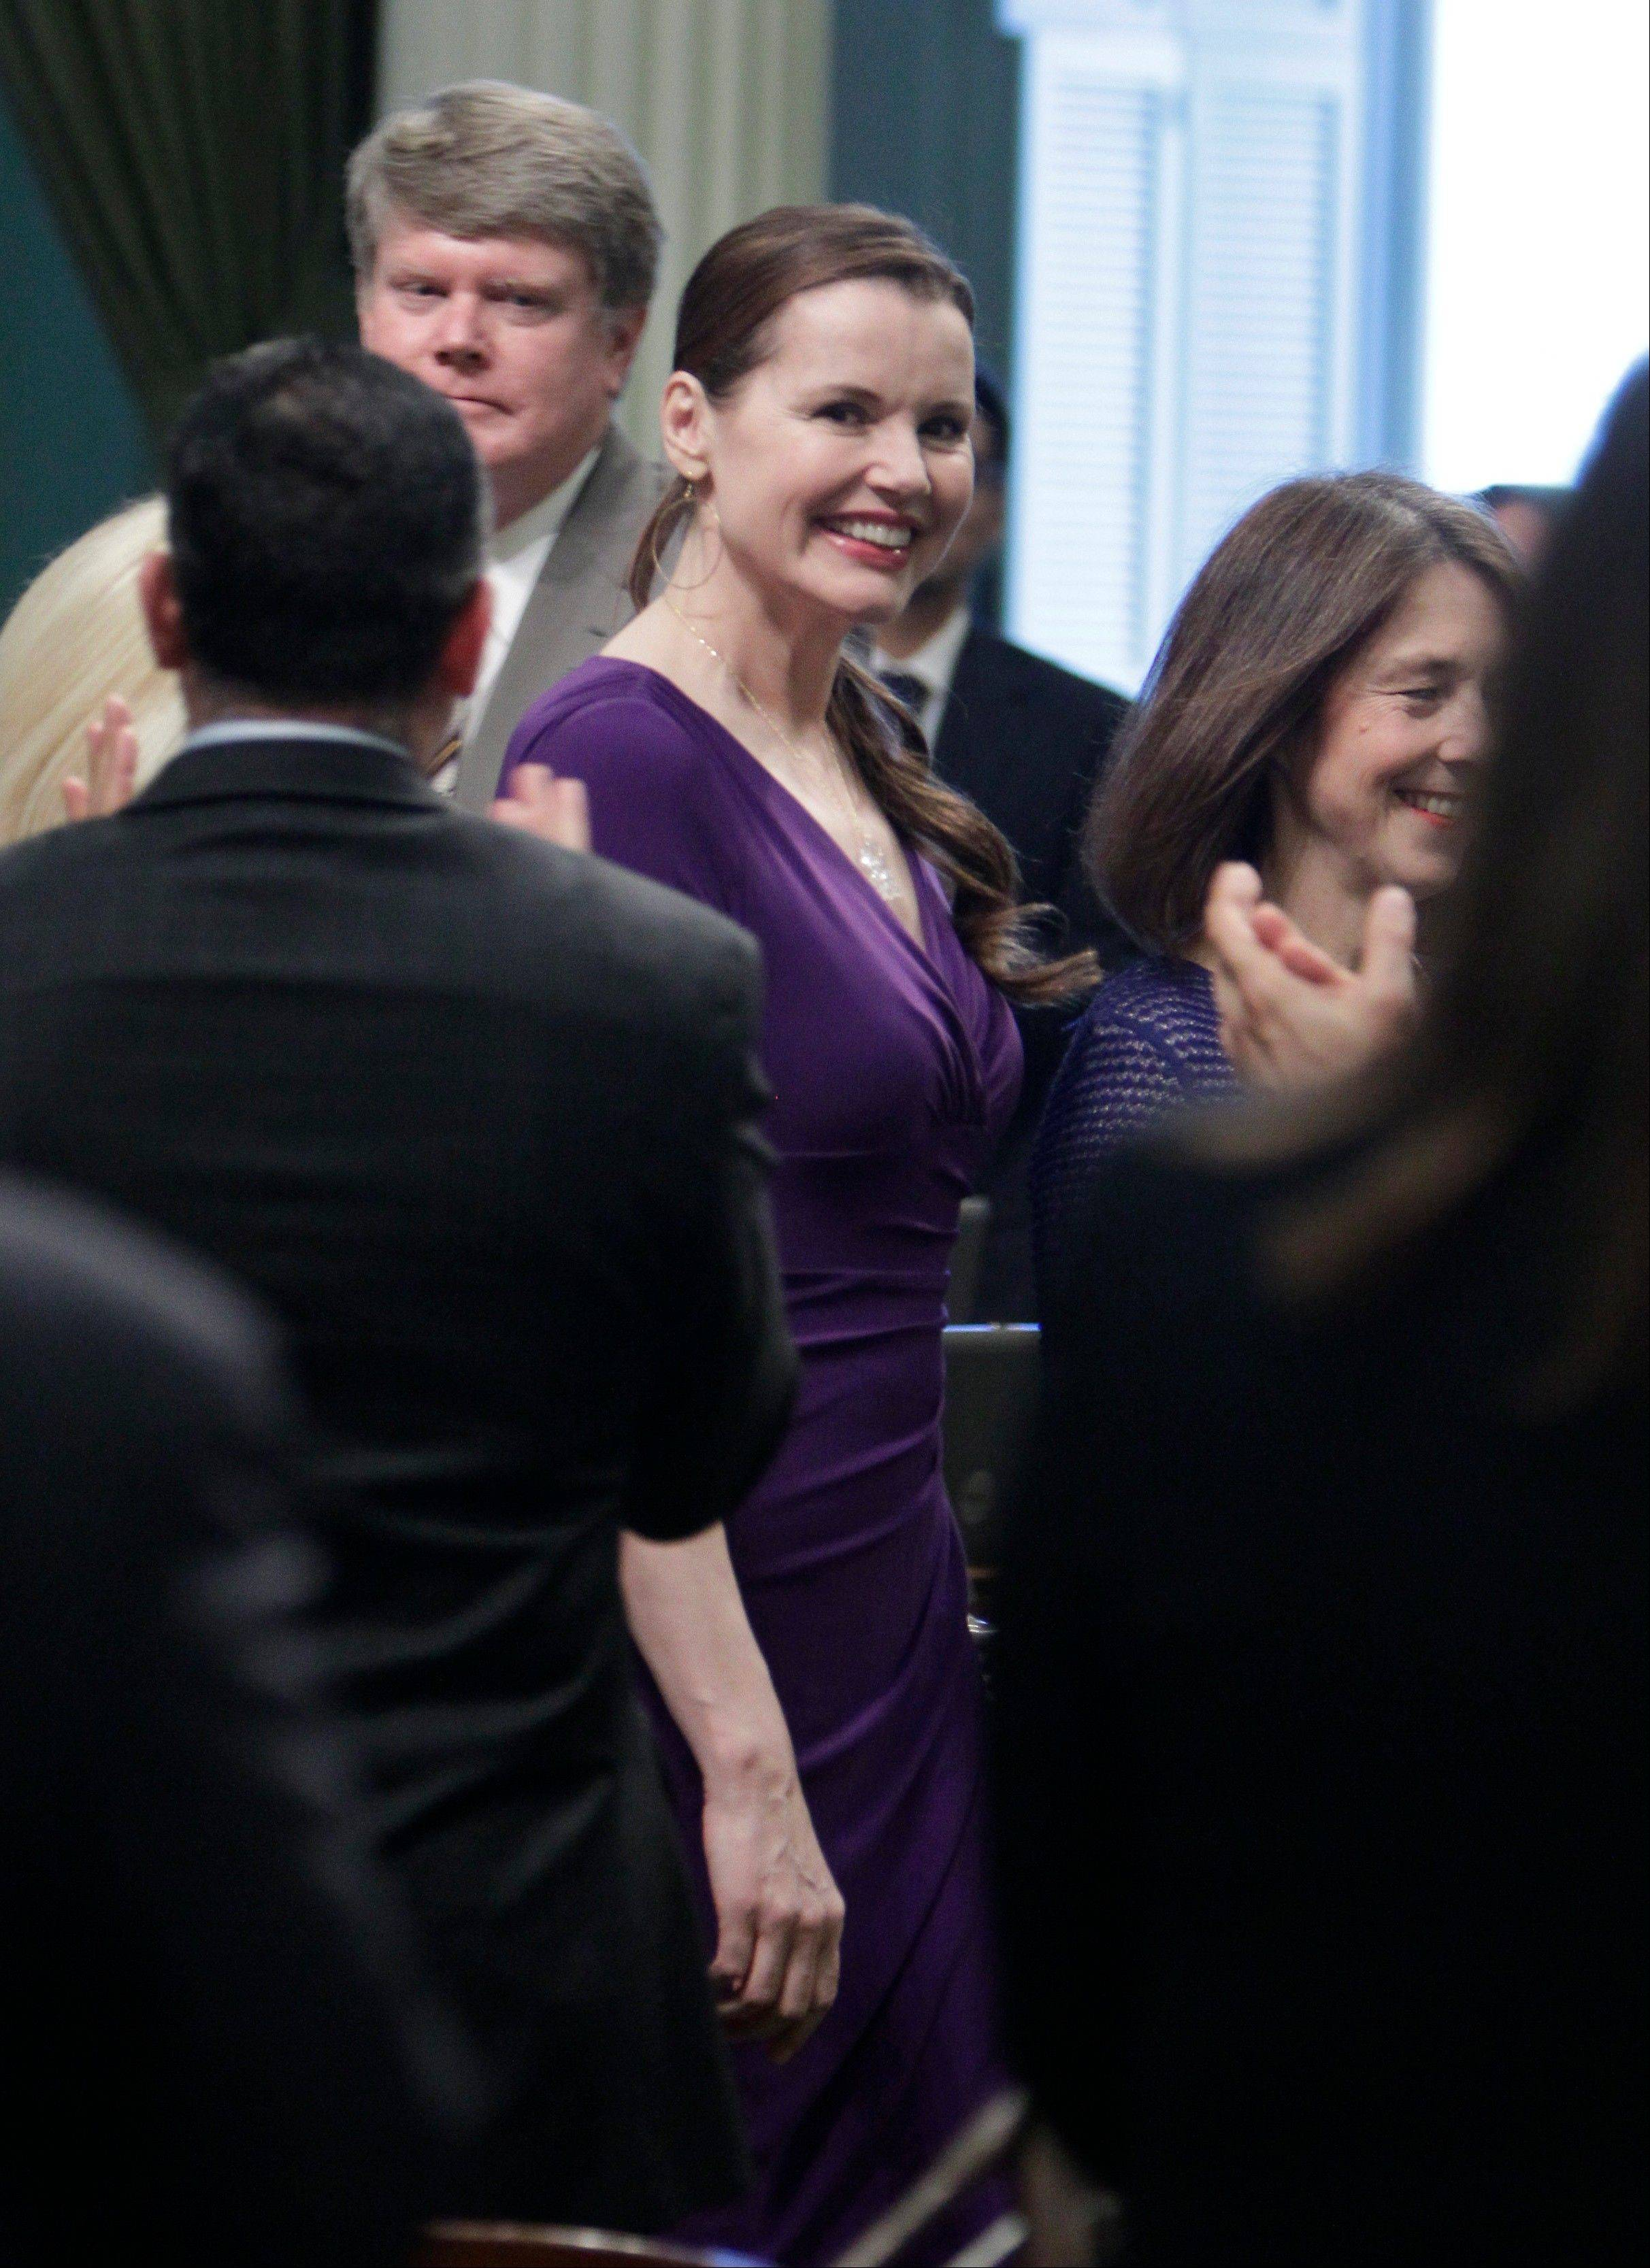 Actress Geena Davis receives a standing ovation from members of the state Assembly as she is escorted down the center aisle by Assemblywoman Nancy Skinner, D-Berkeley, right, at the Capitol in Sacramento, Calif., Monday. Davis, who is the chairwoman of the Commission on the Status of Women, was one of several women honored for their accomplishments.